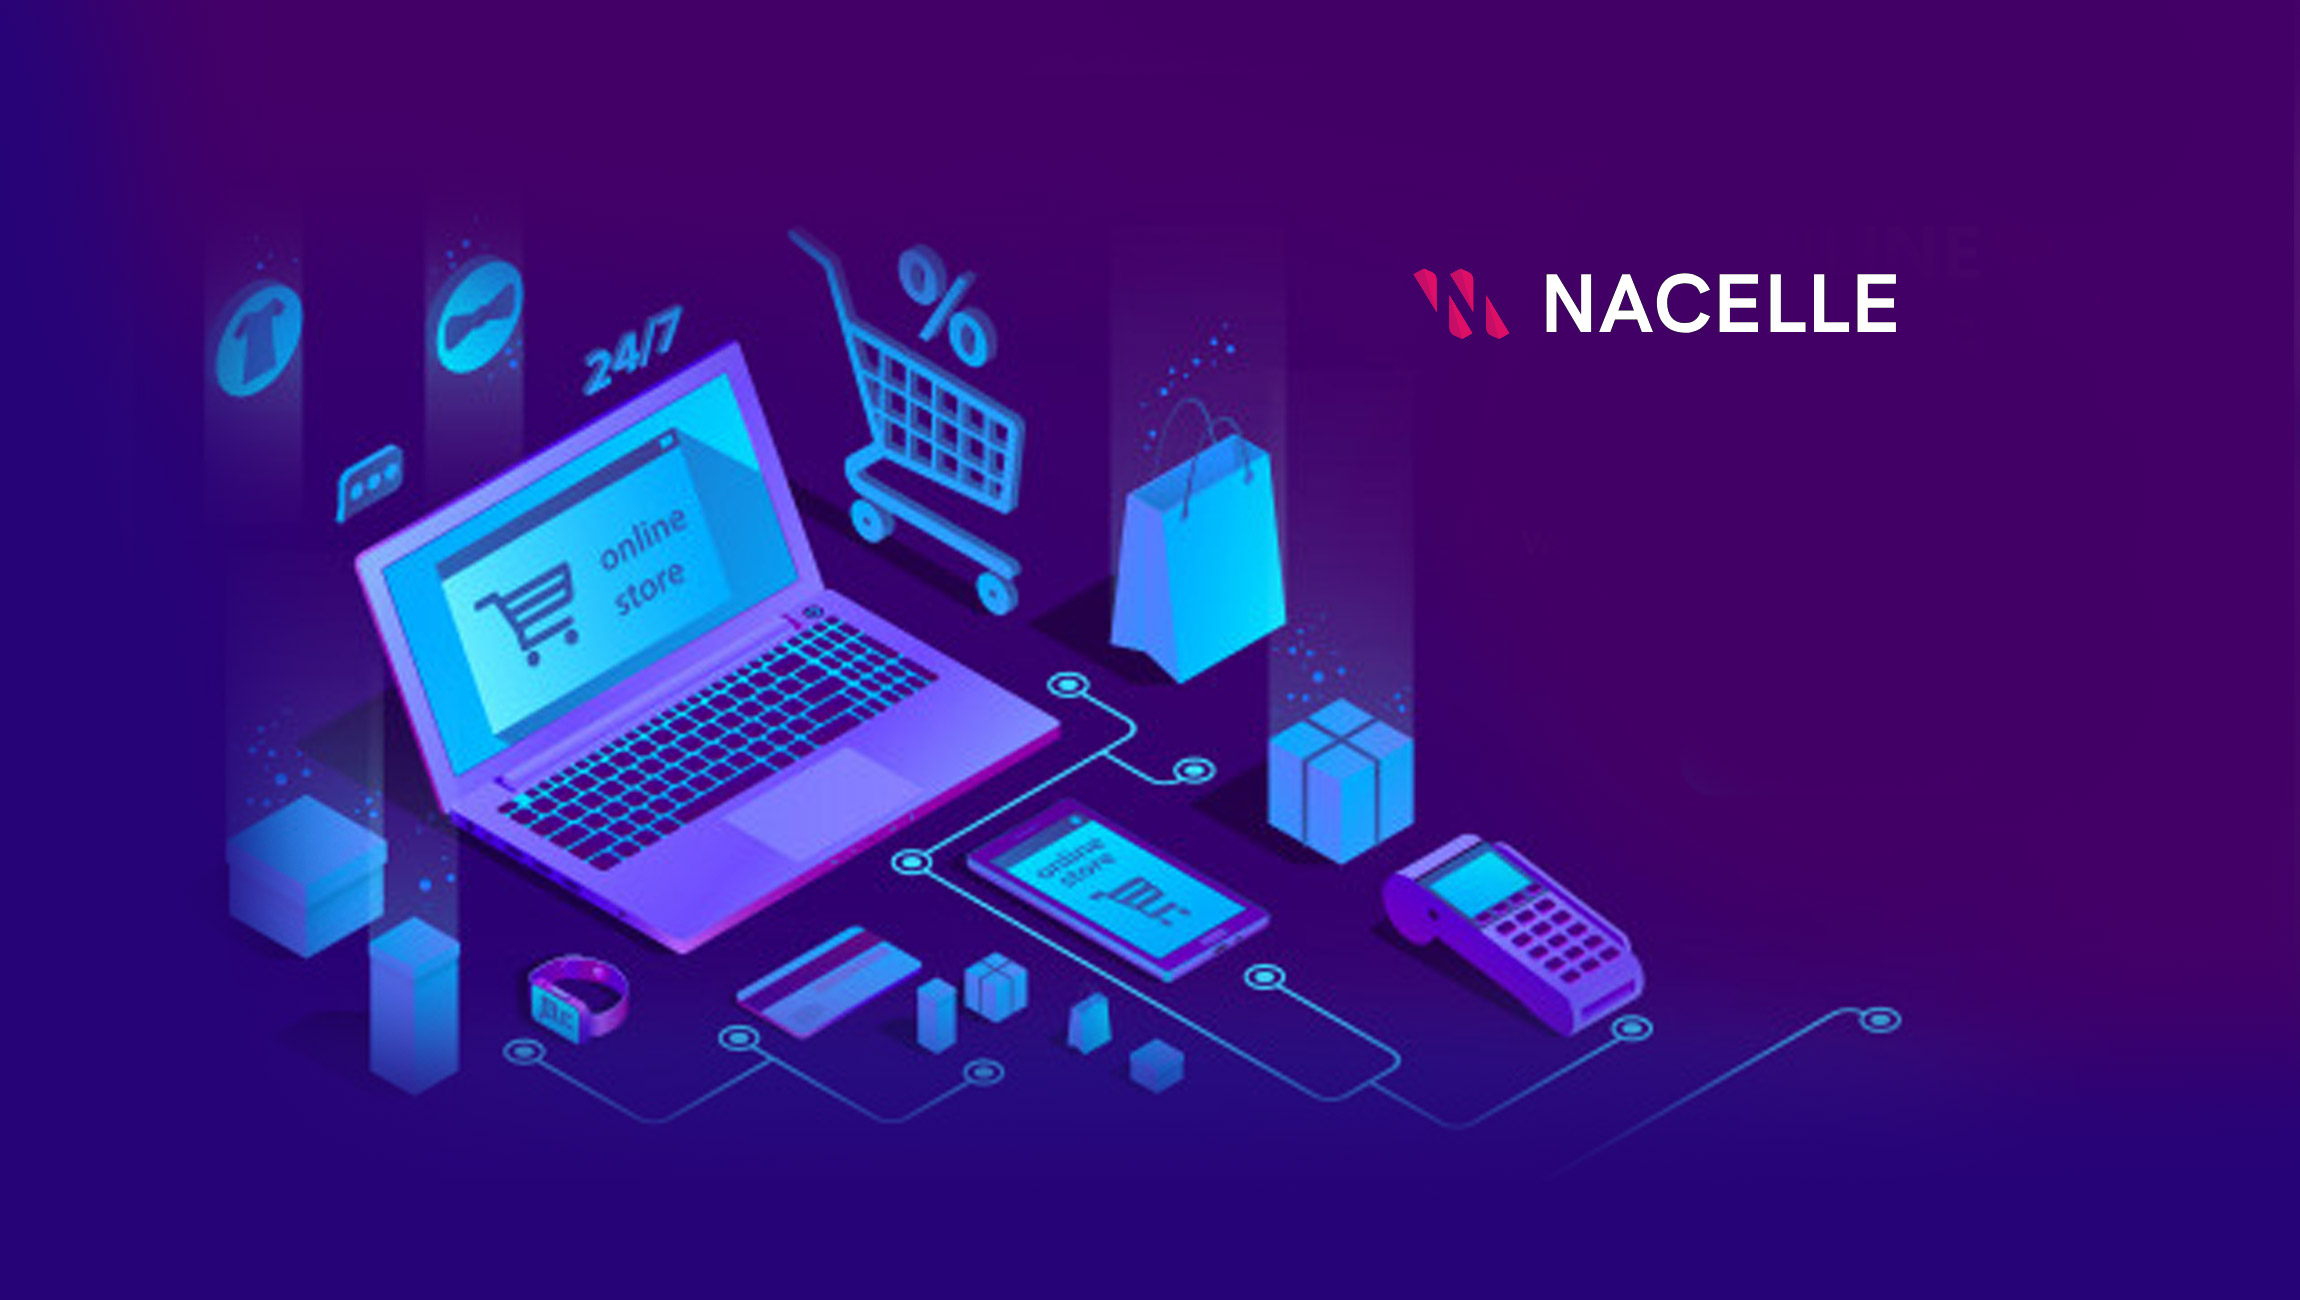 Nacelle-Raises-_18m-in-Series-A-Funding-to-Grow-Headless-Commerce-Platform-that-Boosts-eCommerce-Speed-and-Conversions